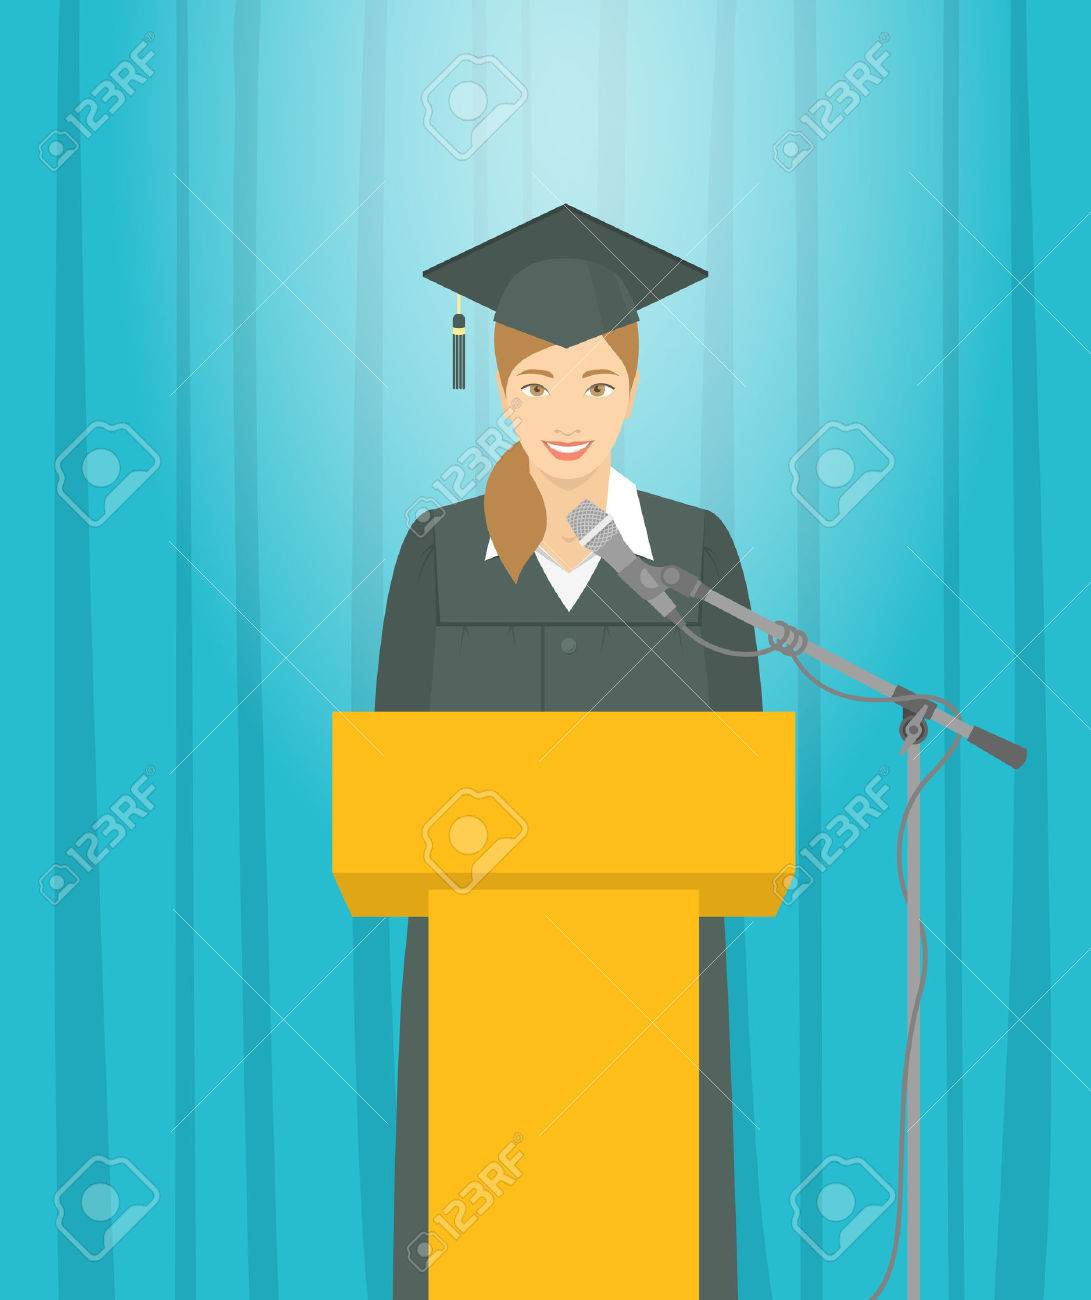 Graduation ceremony speech flat illustration. Young smiling Asian girl graduate in a gown and a mortarboard stands at a podium and gives a graduation speech. Academic education concept - 52208540